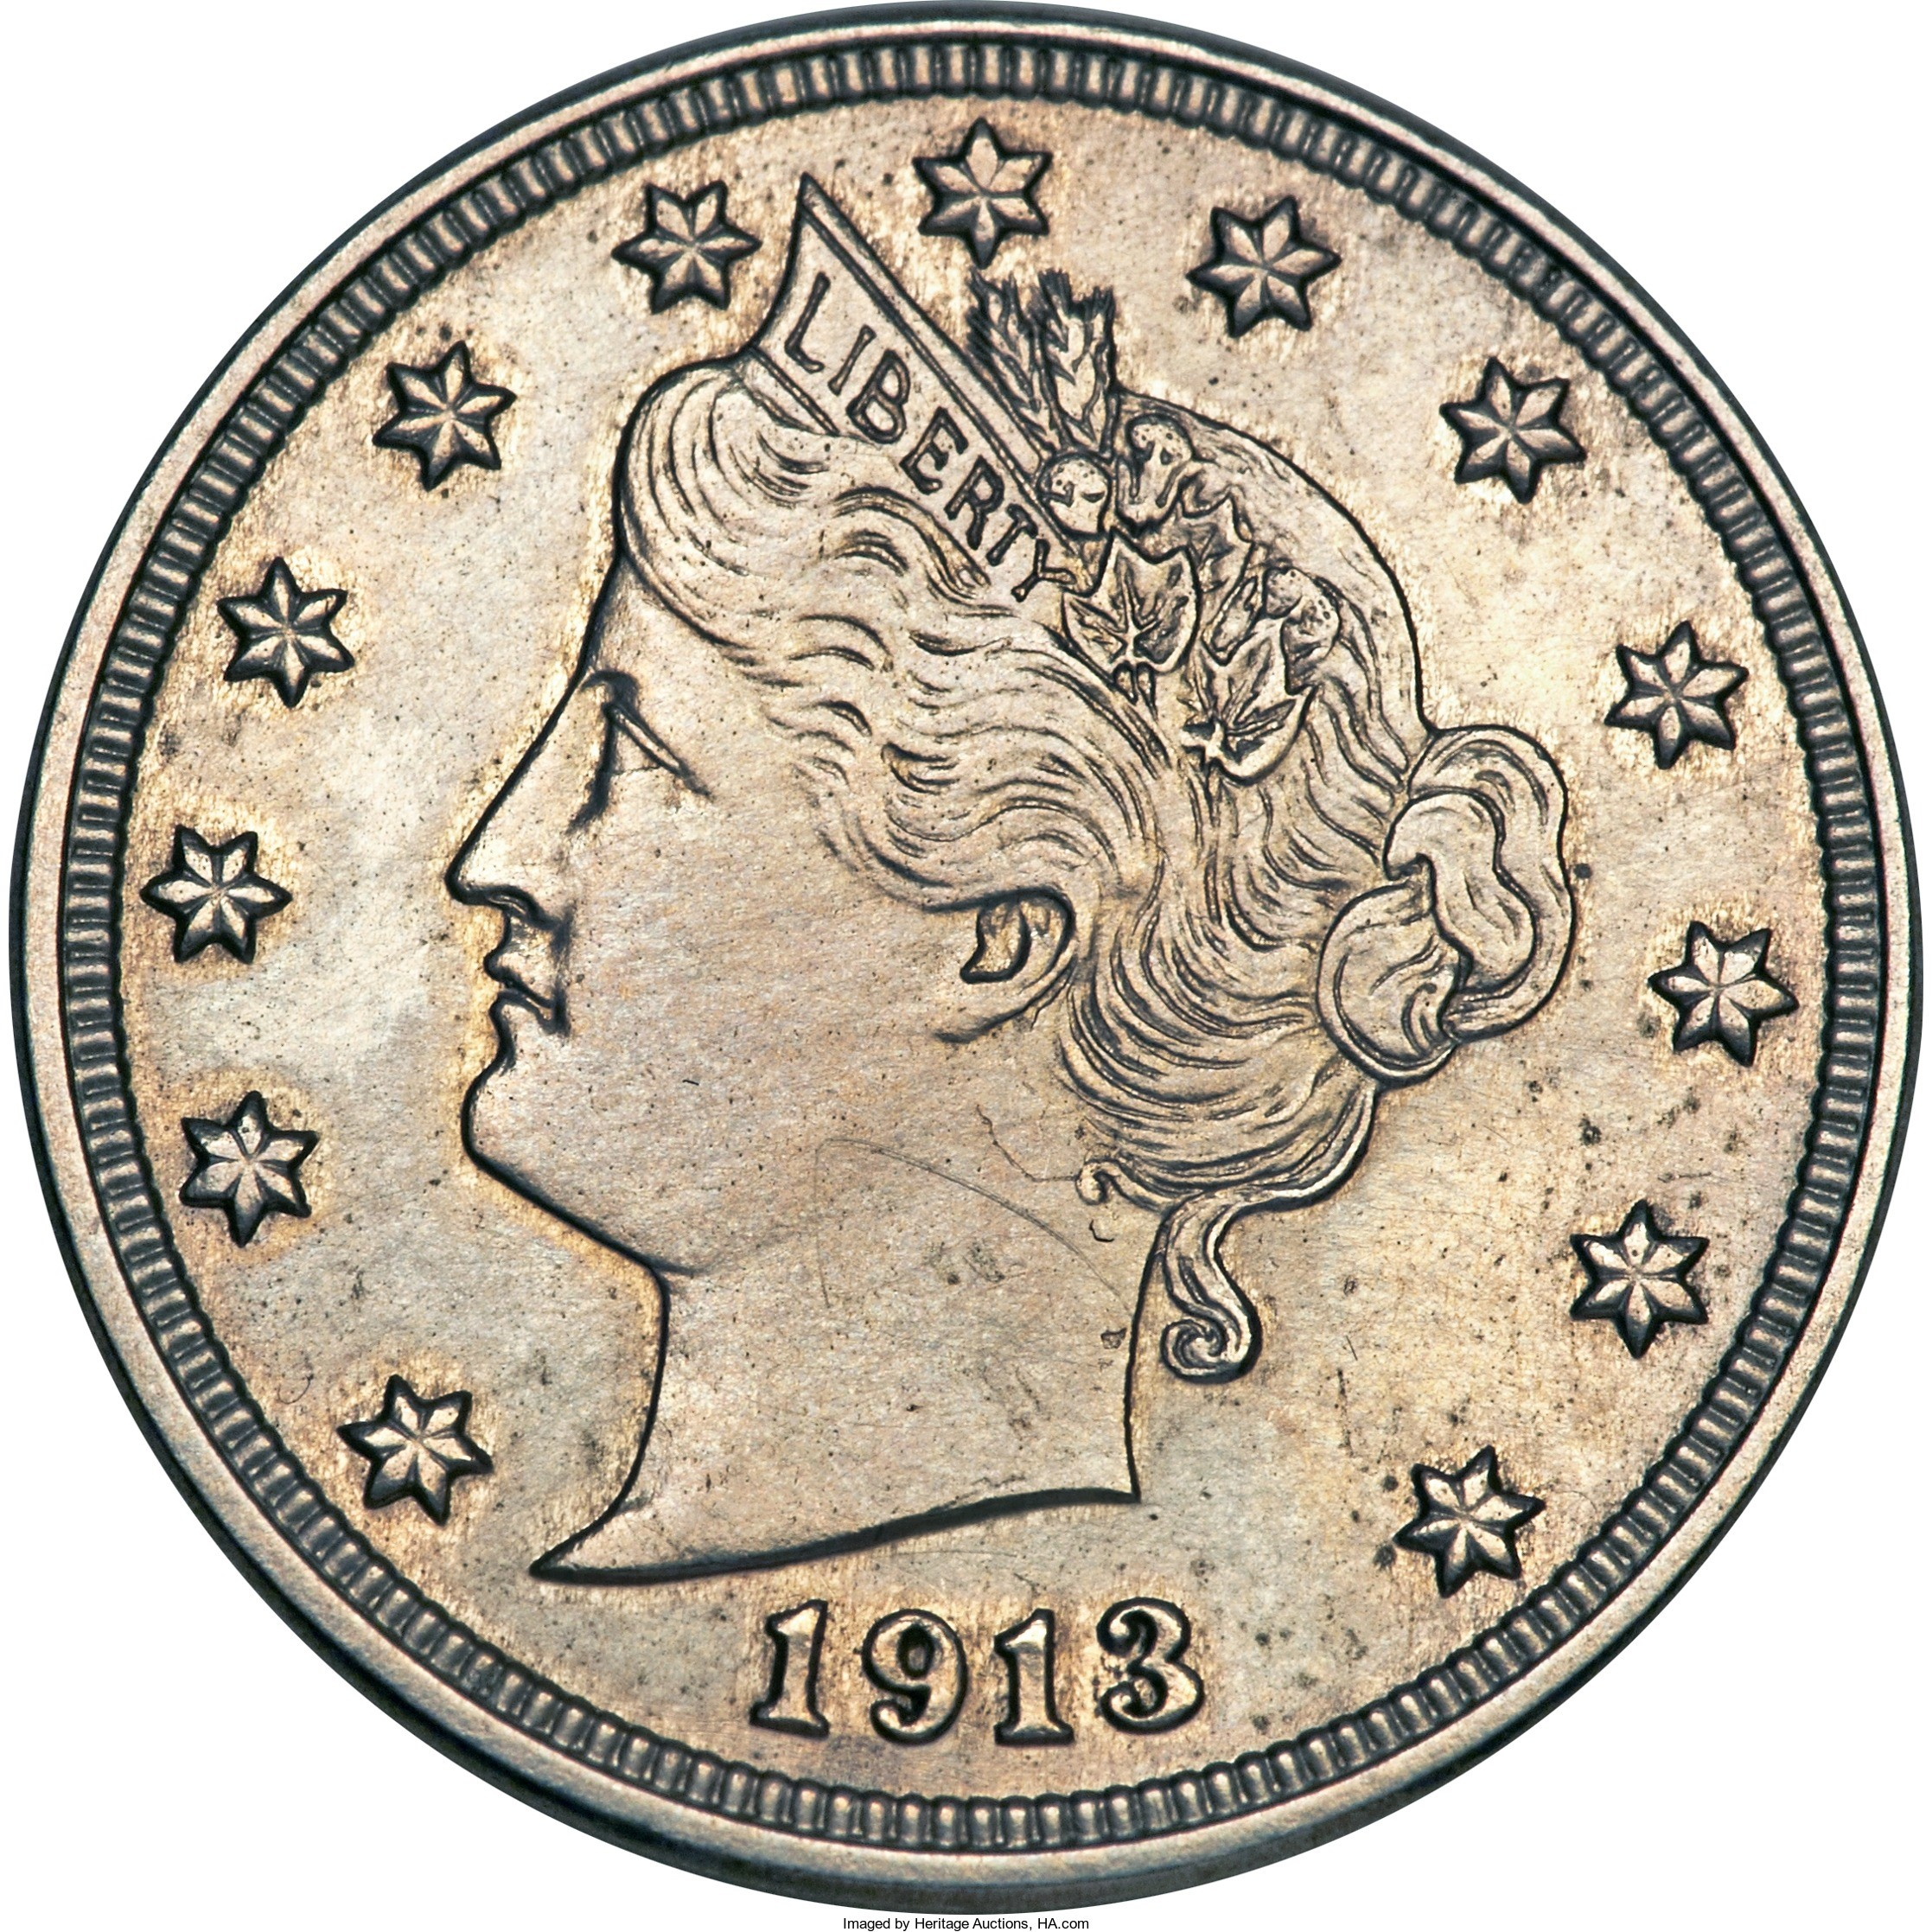 This 1913 Liberty Head 5-cent piece famously appeared in a 1973 episode of the Hawaii Five-0 television show. It sold for $3,736,500 at auction in 2010.